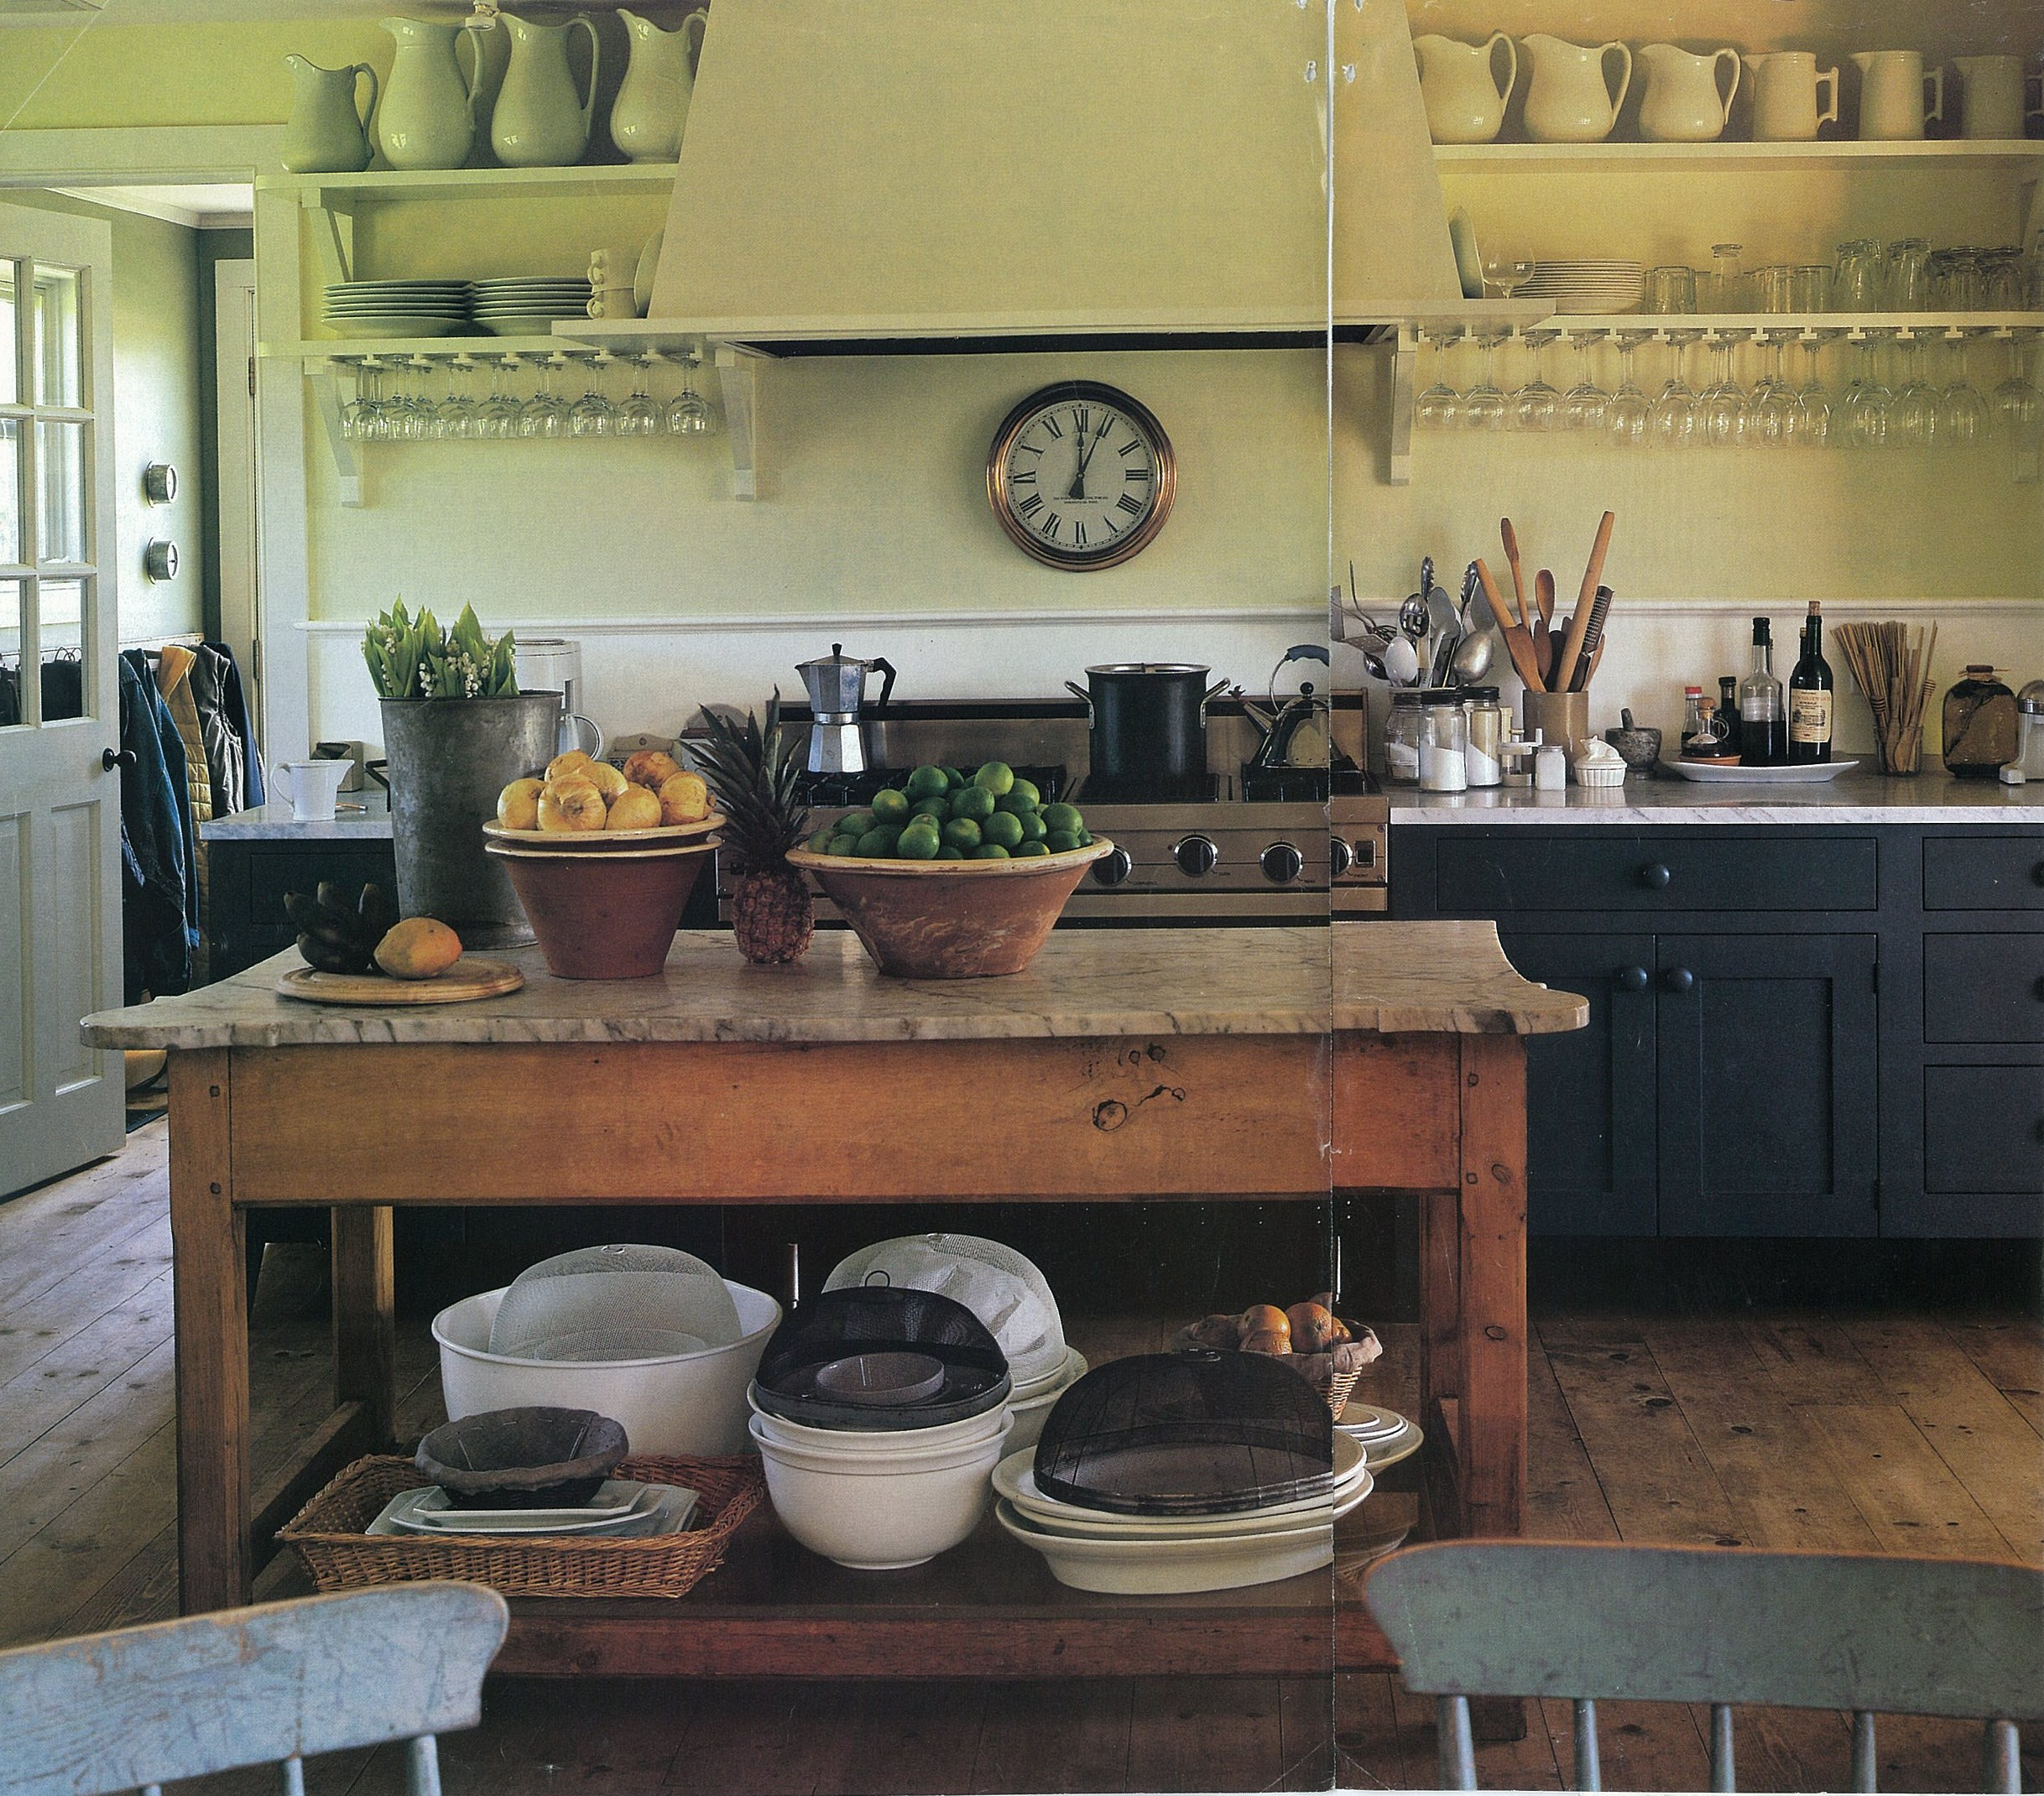 Kitchens With No Upper Cabinets: Peri Wolfman Style On Pinterest